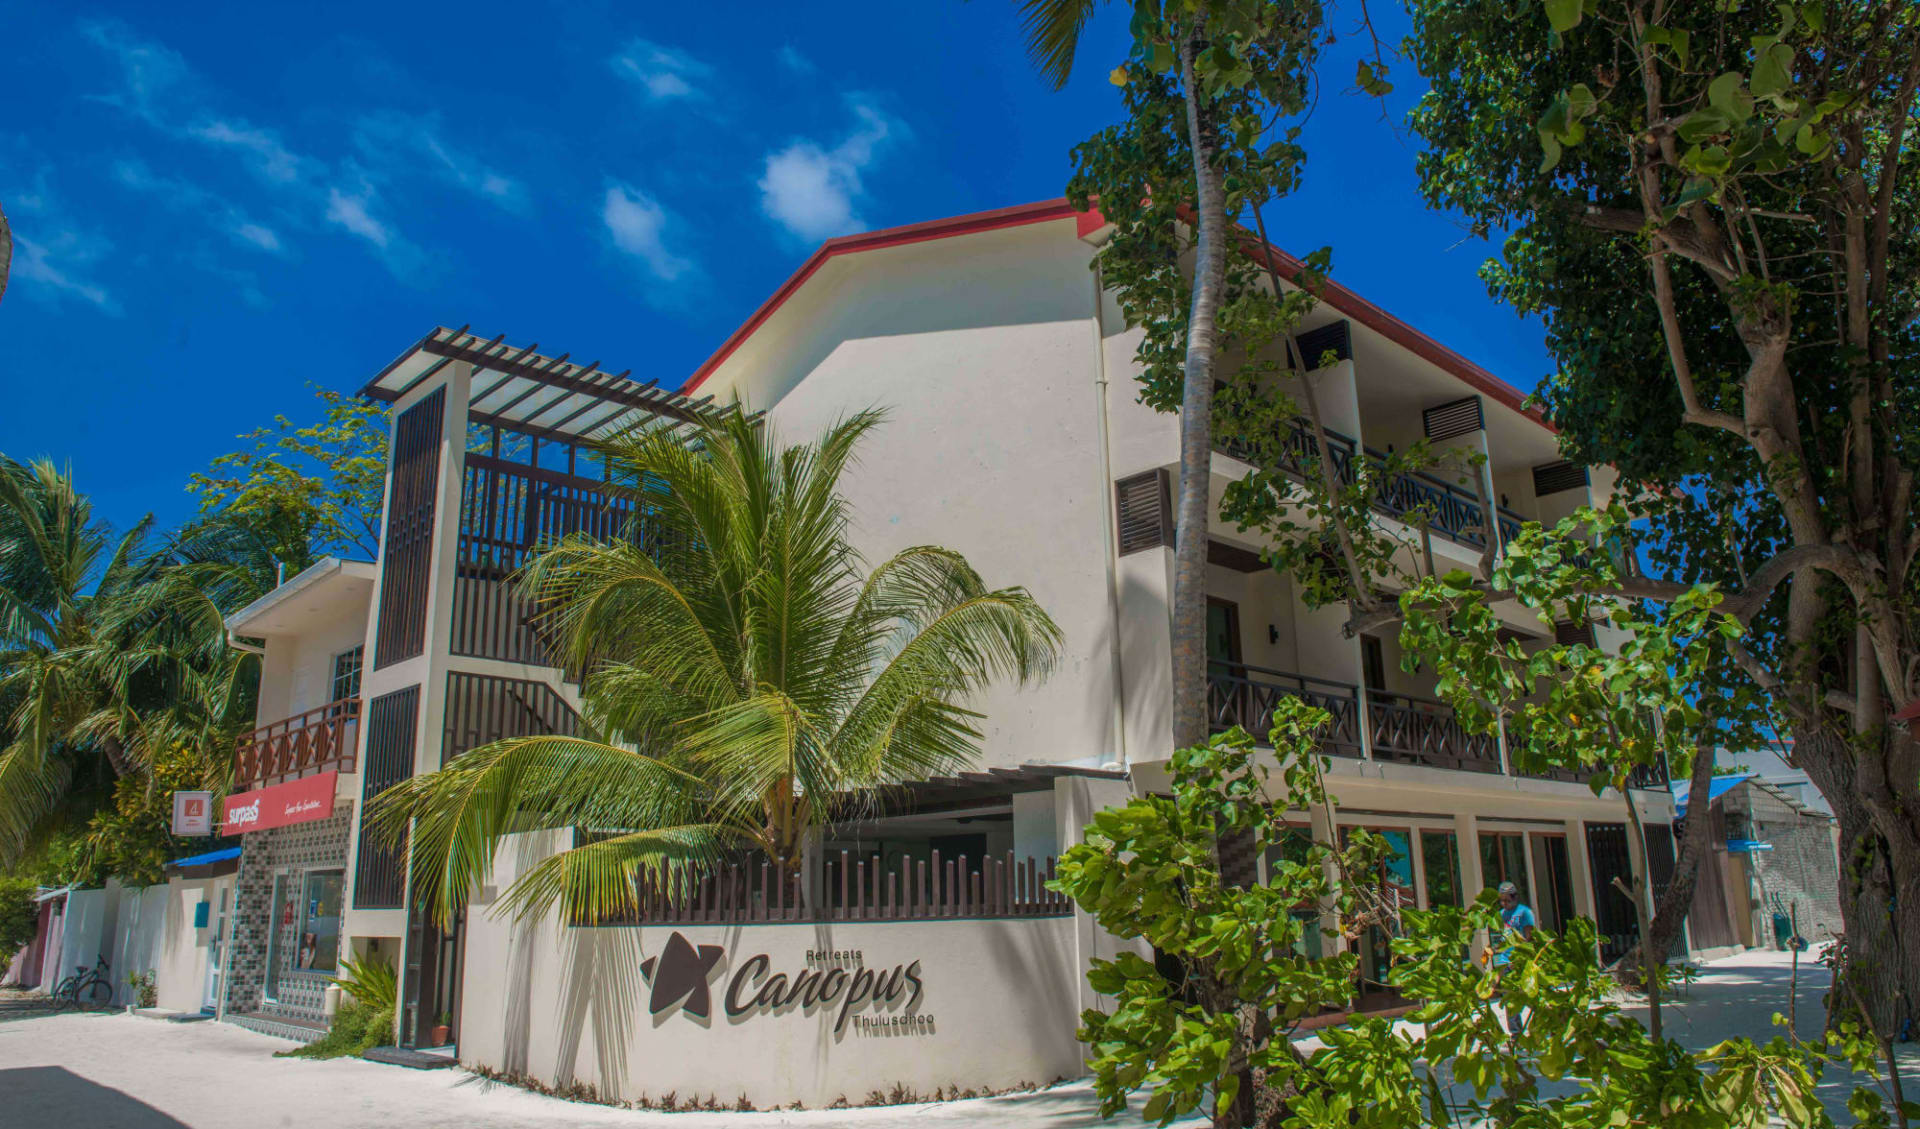 Canopus Retreat in Thulusdhoo: